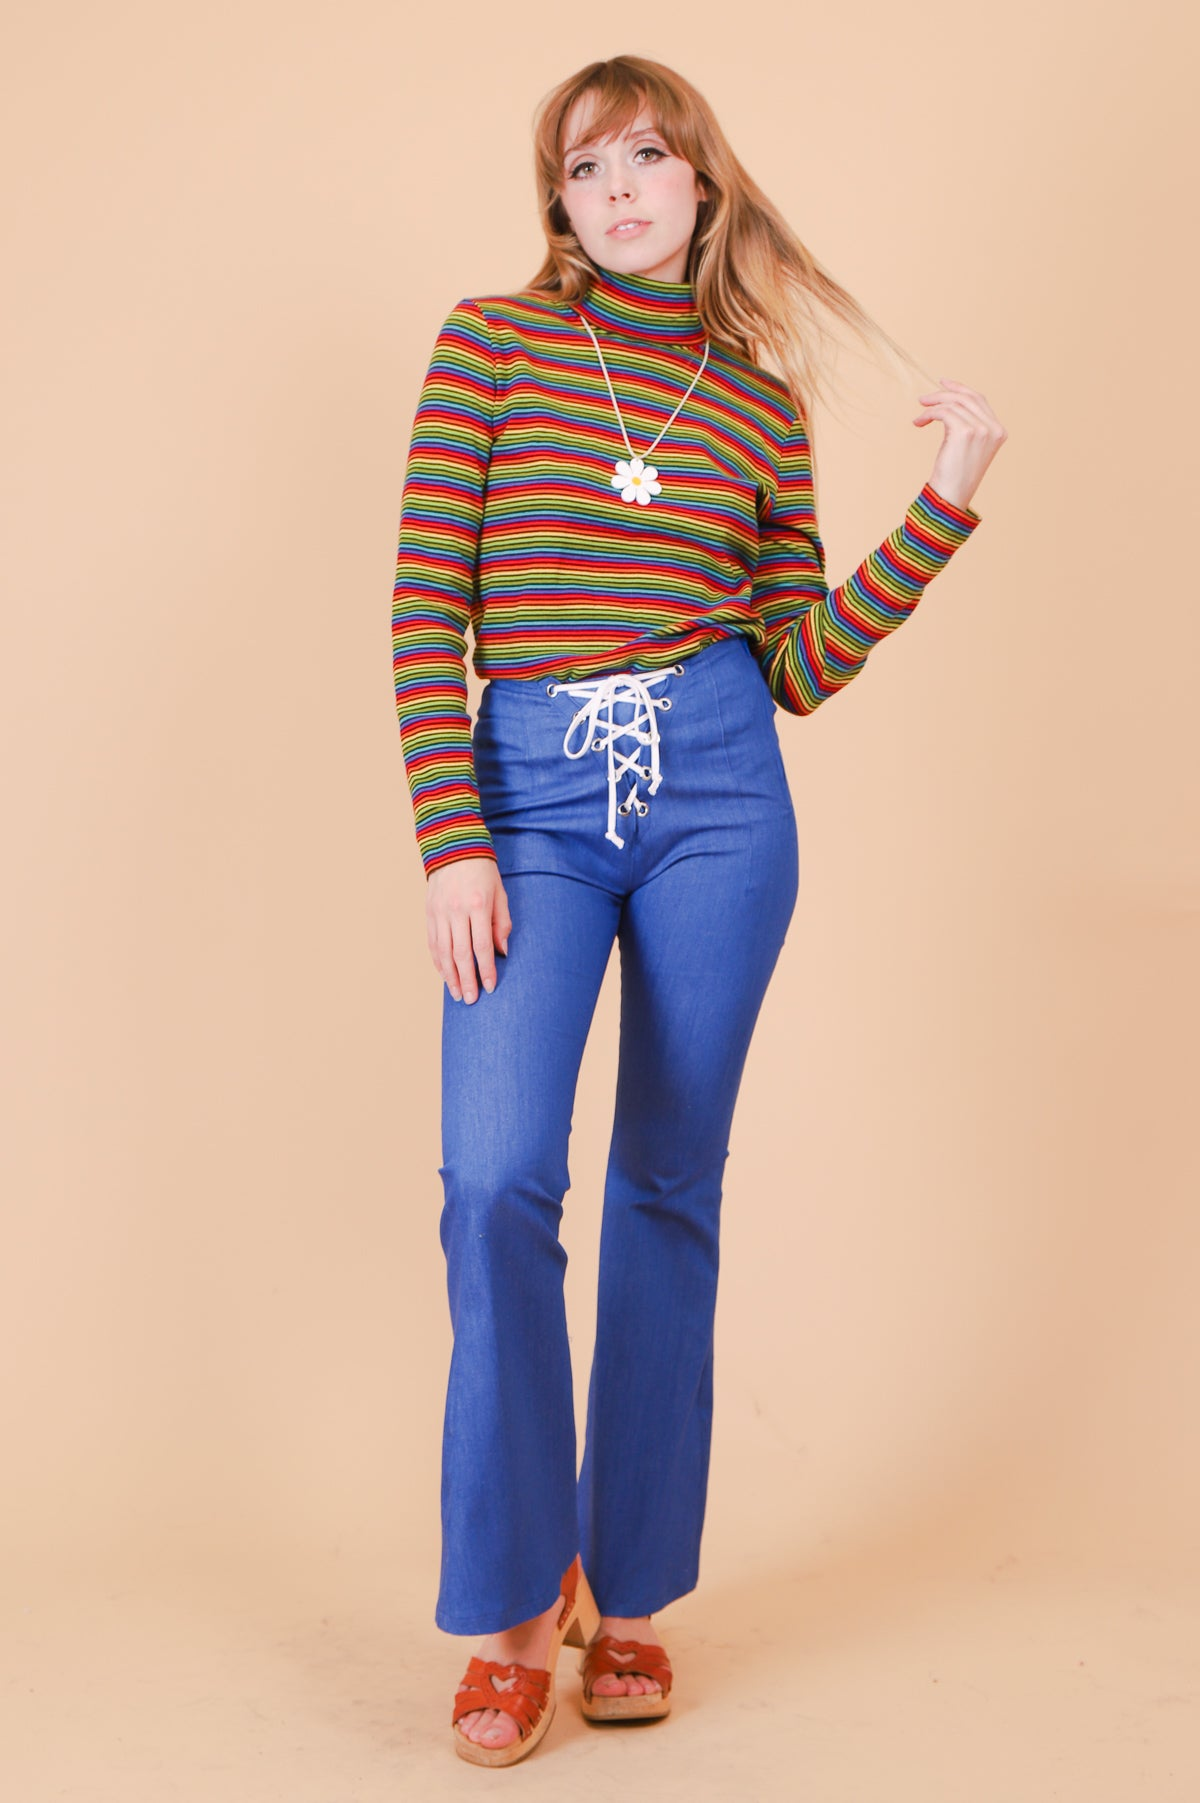 Vintage 1990's Rainbow Connection Turtleneck